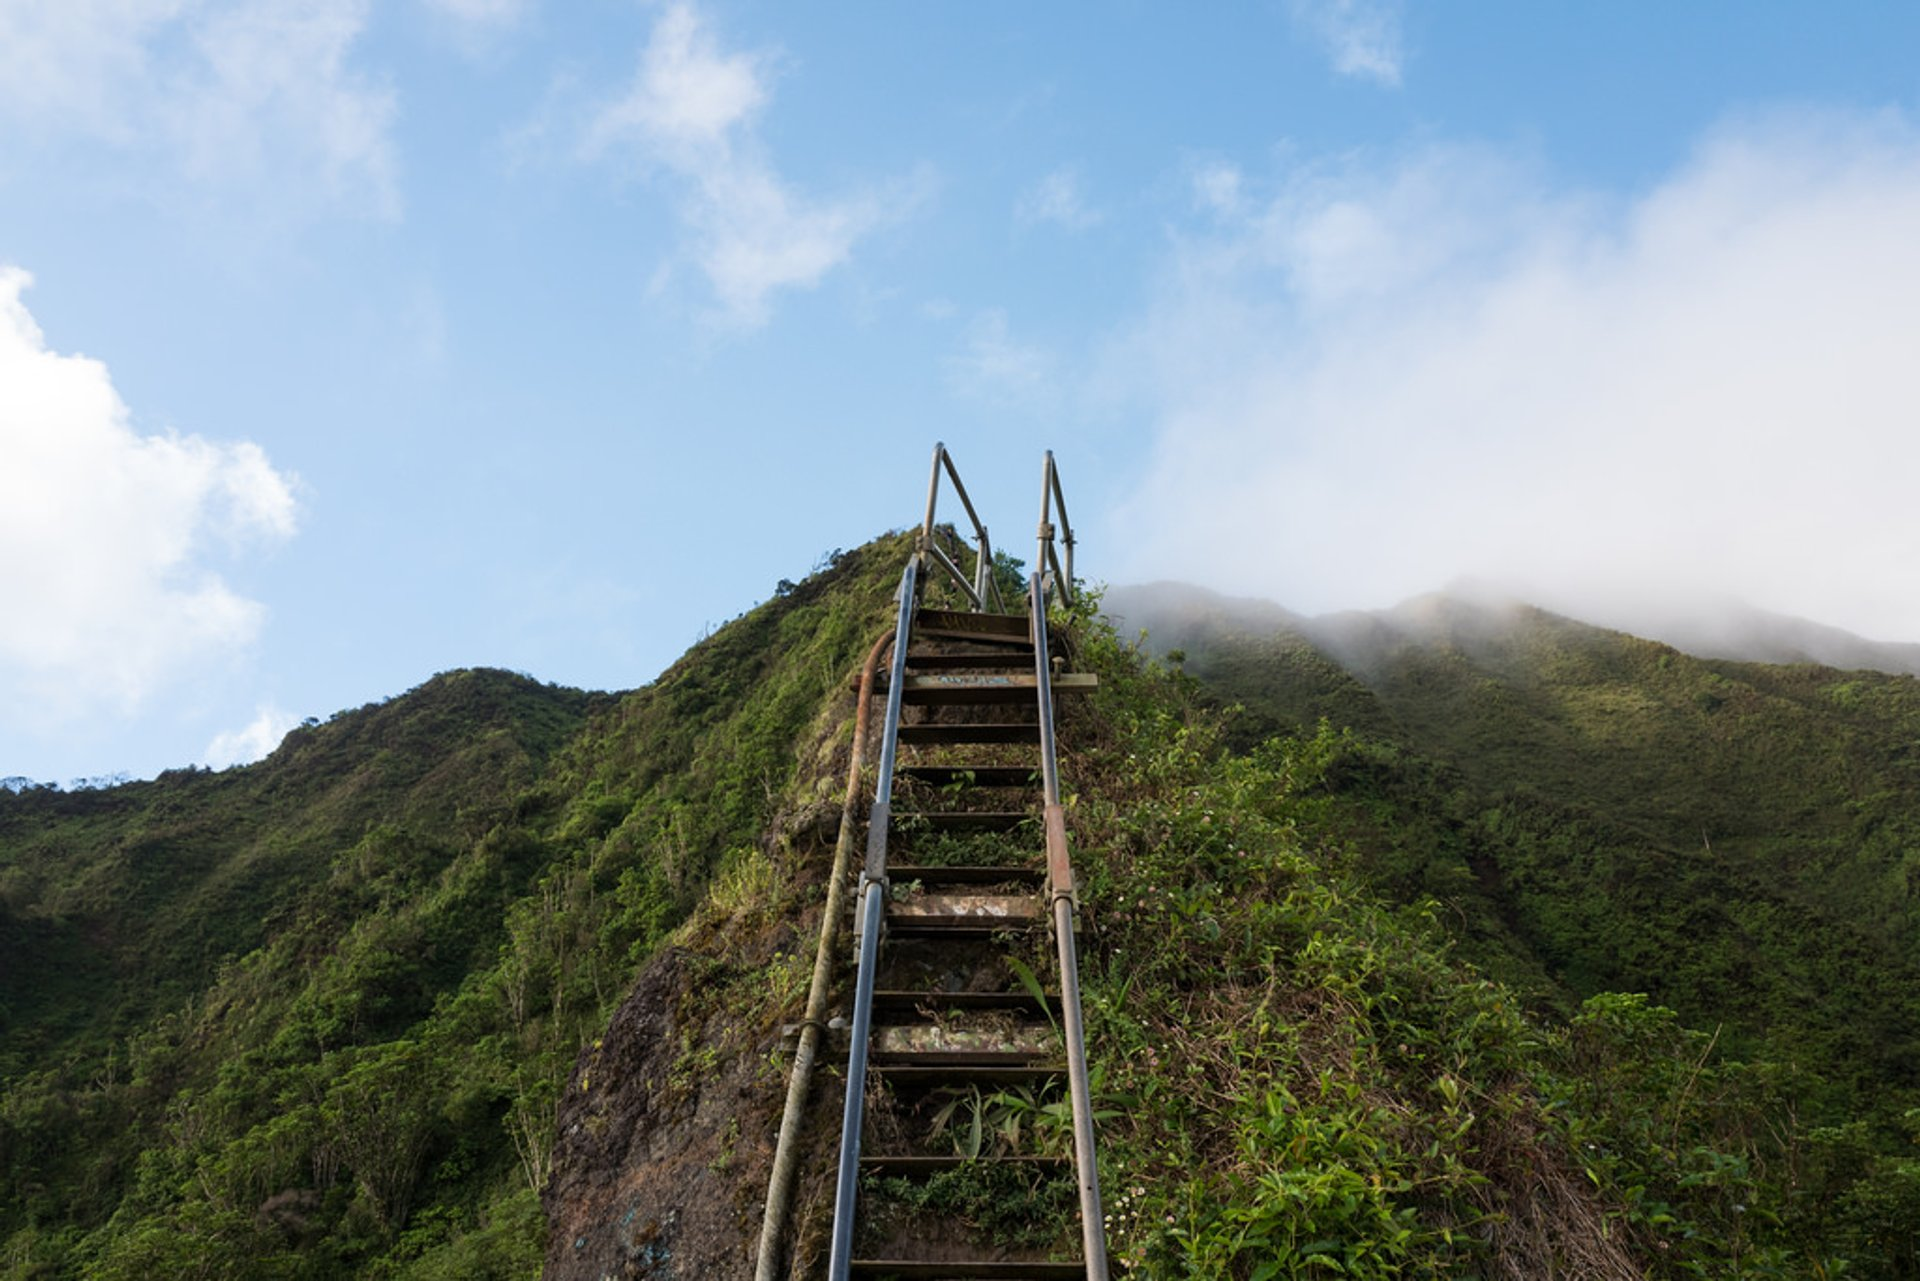 Moanalua Valley Trail to Haiku Stairs in Hawaii 2019 - Best Time